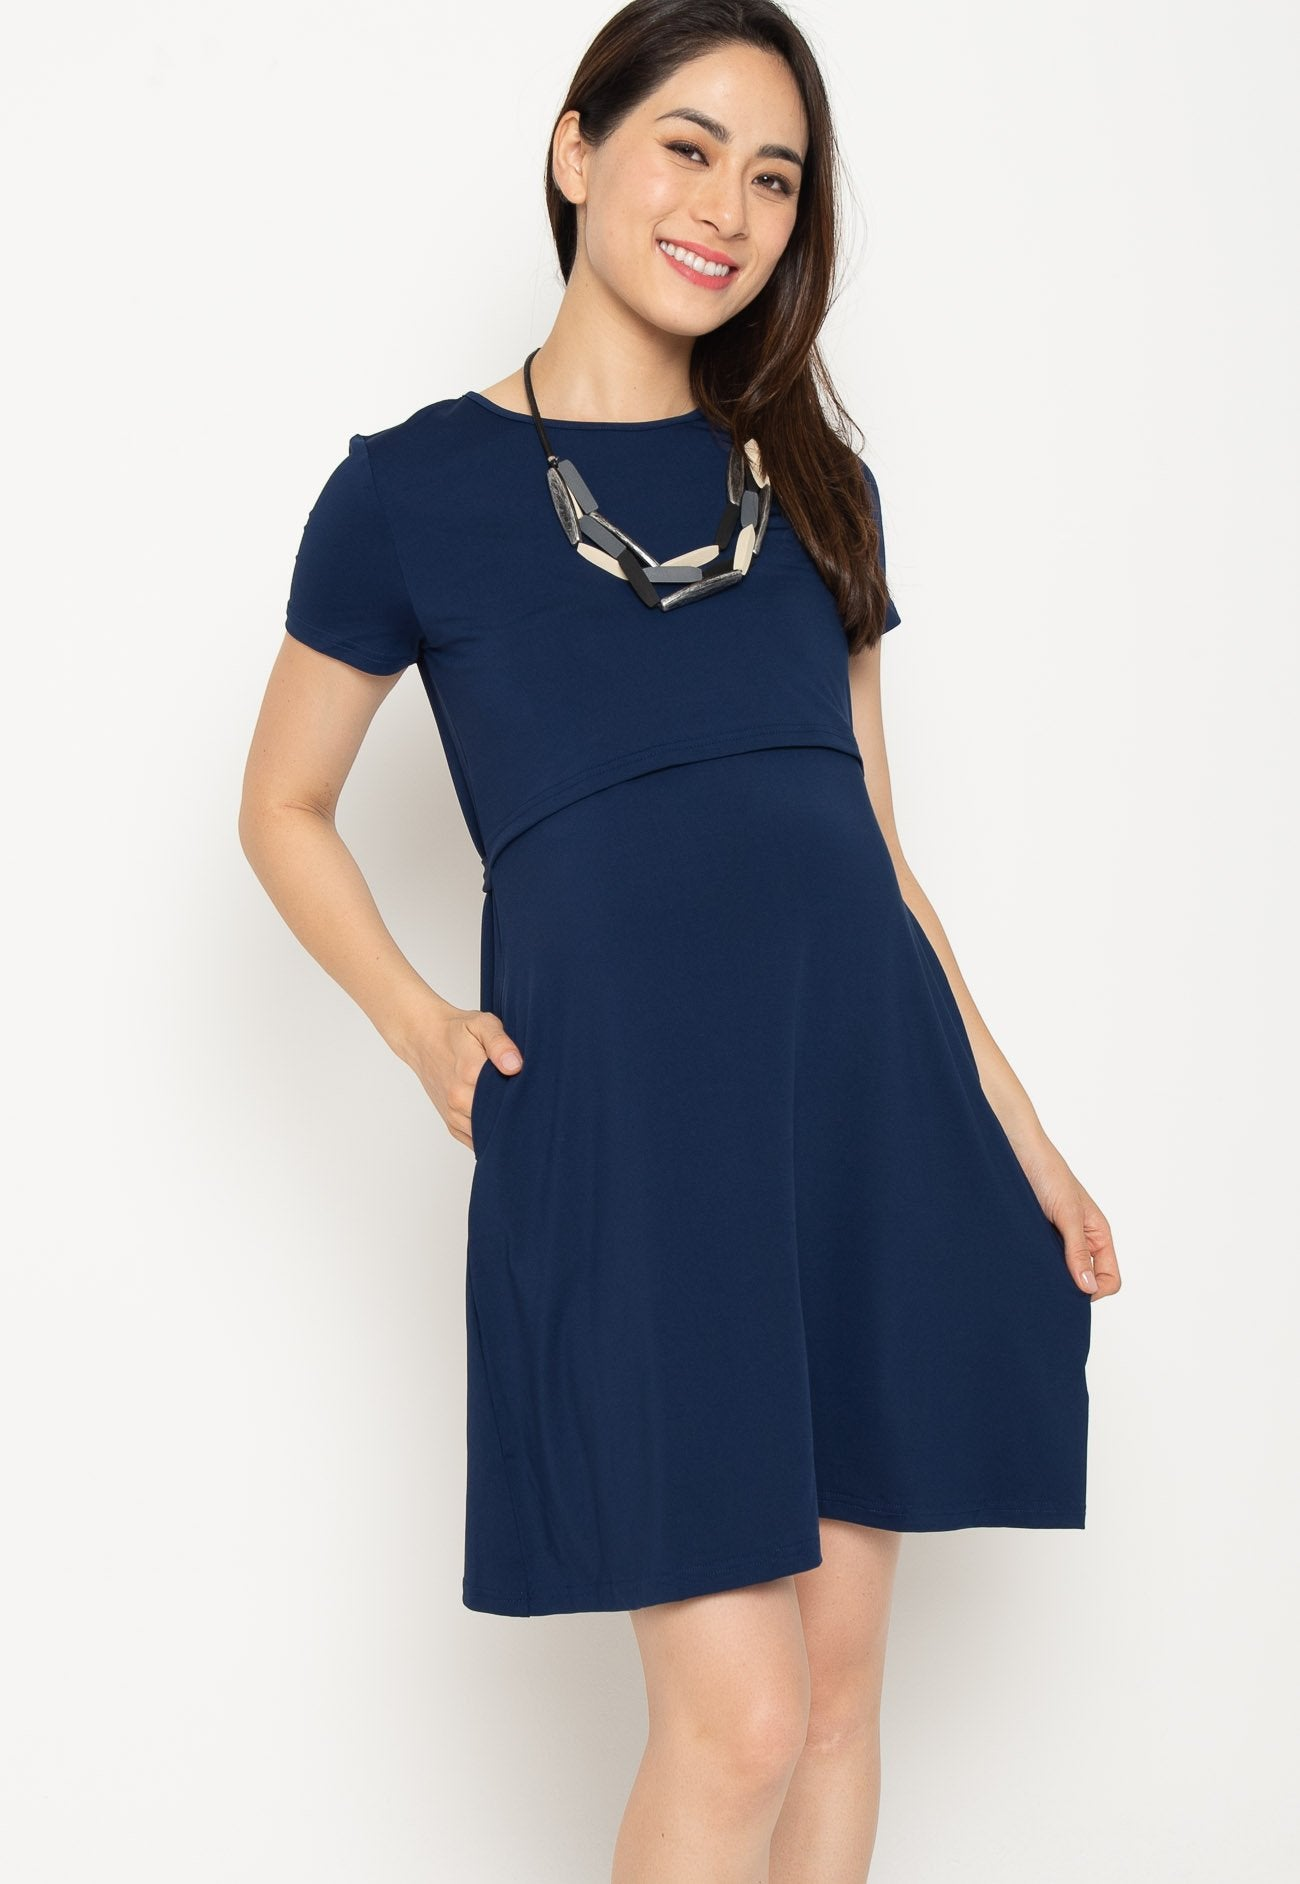 Mothercot Cotton Nursing Dress in Navy  by JumpEatCry - Maternity and nursing wear